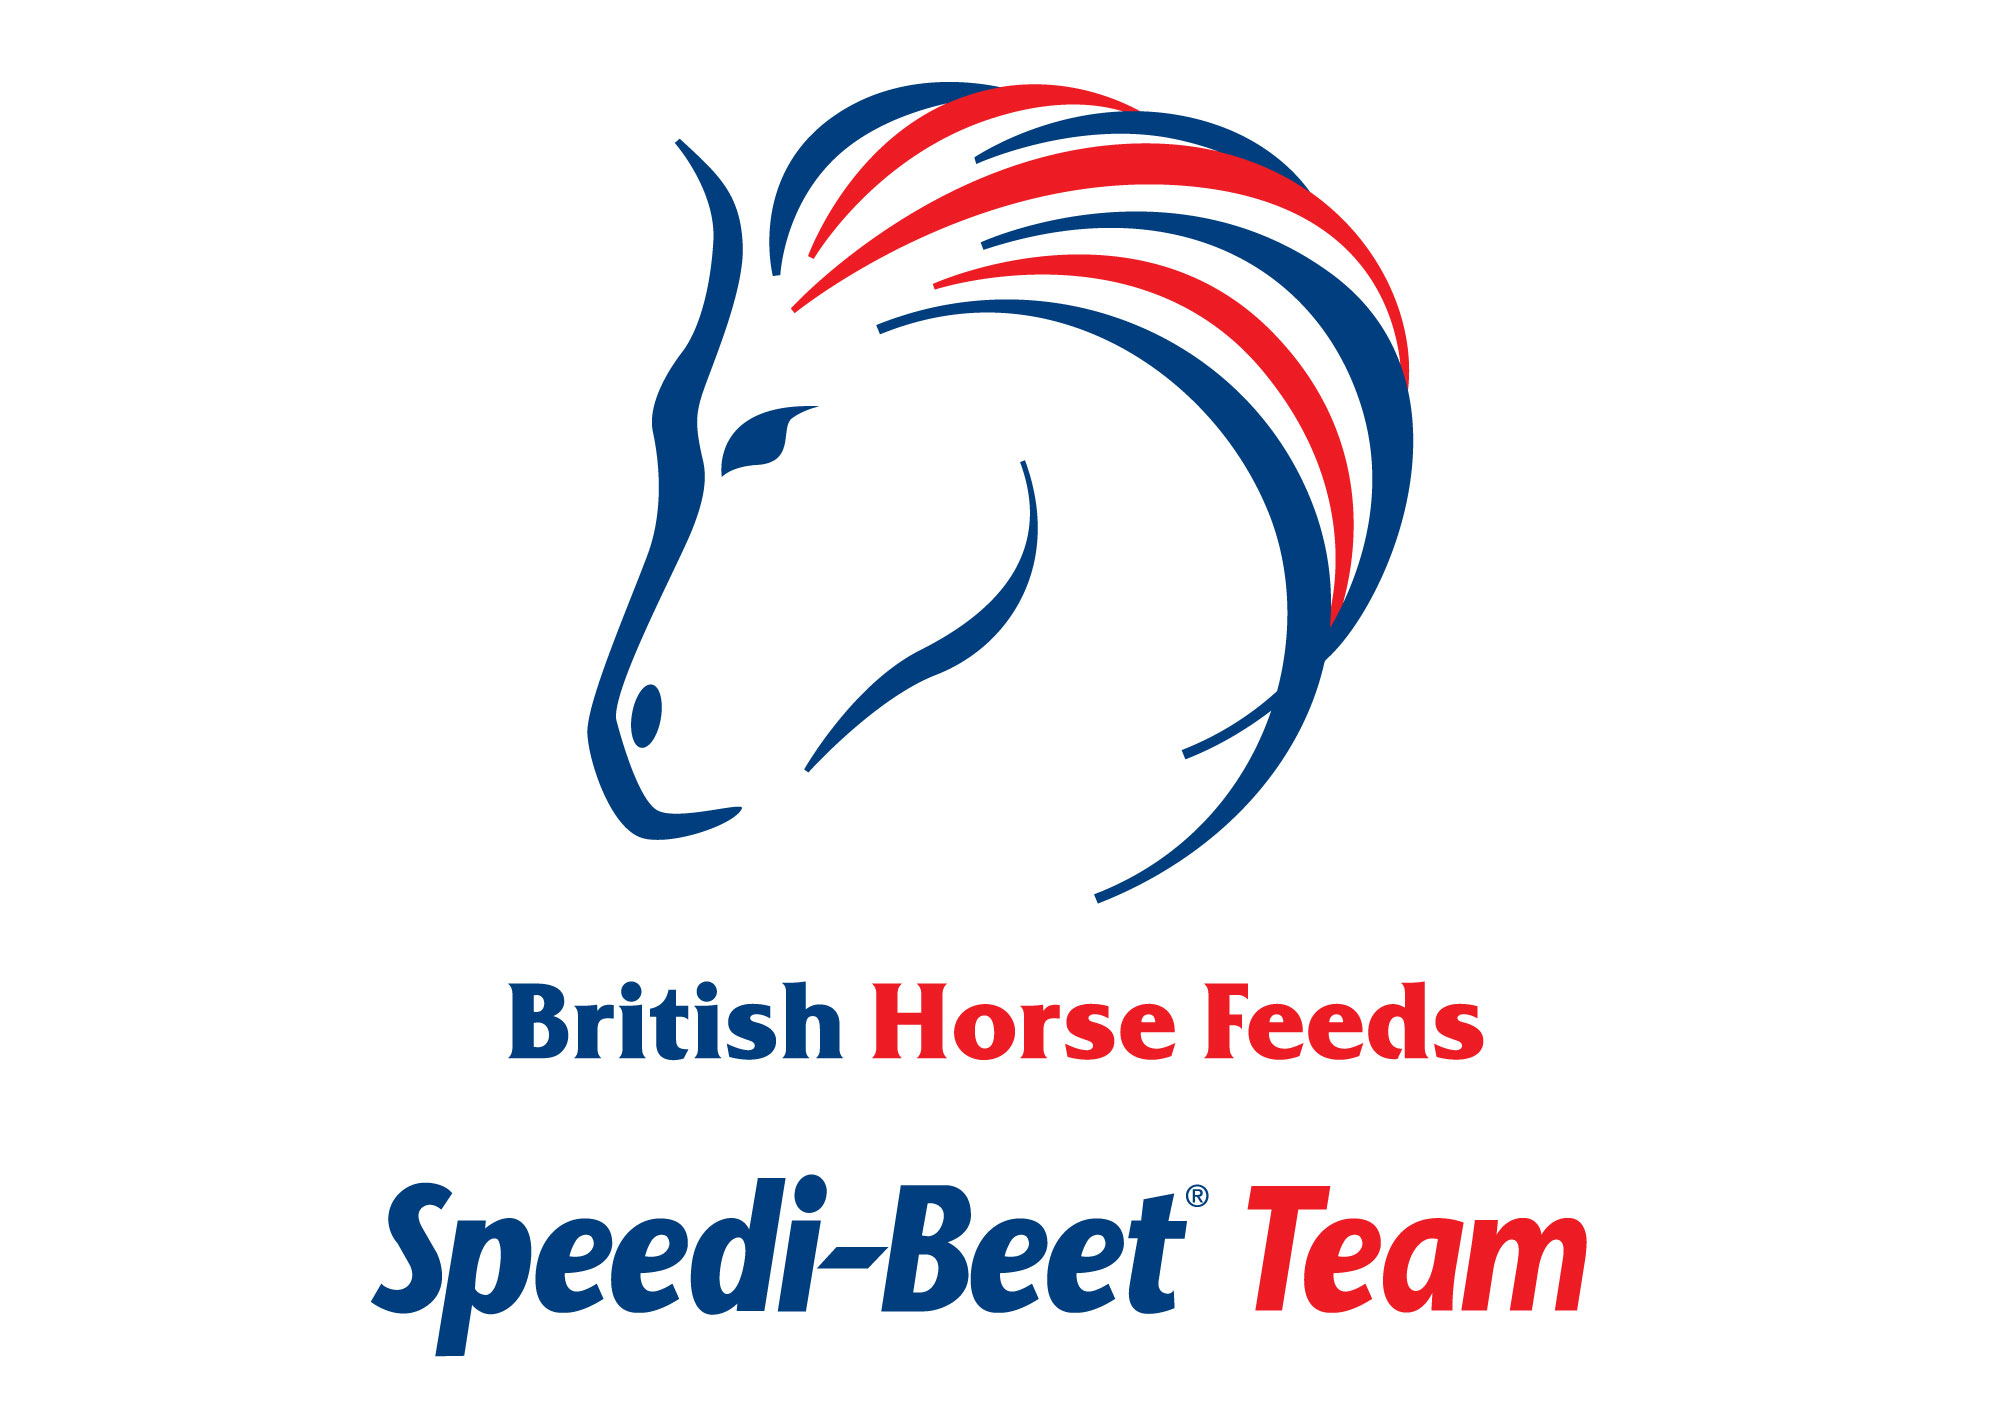 speedibeet team logo - Would you like to join the Speedi-Beet Team?